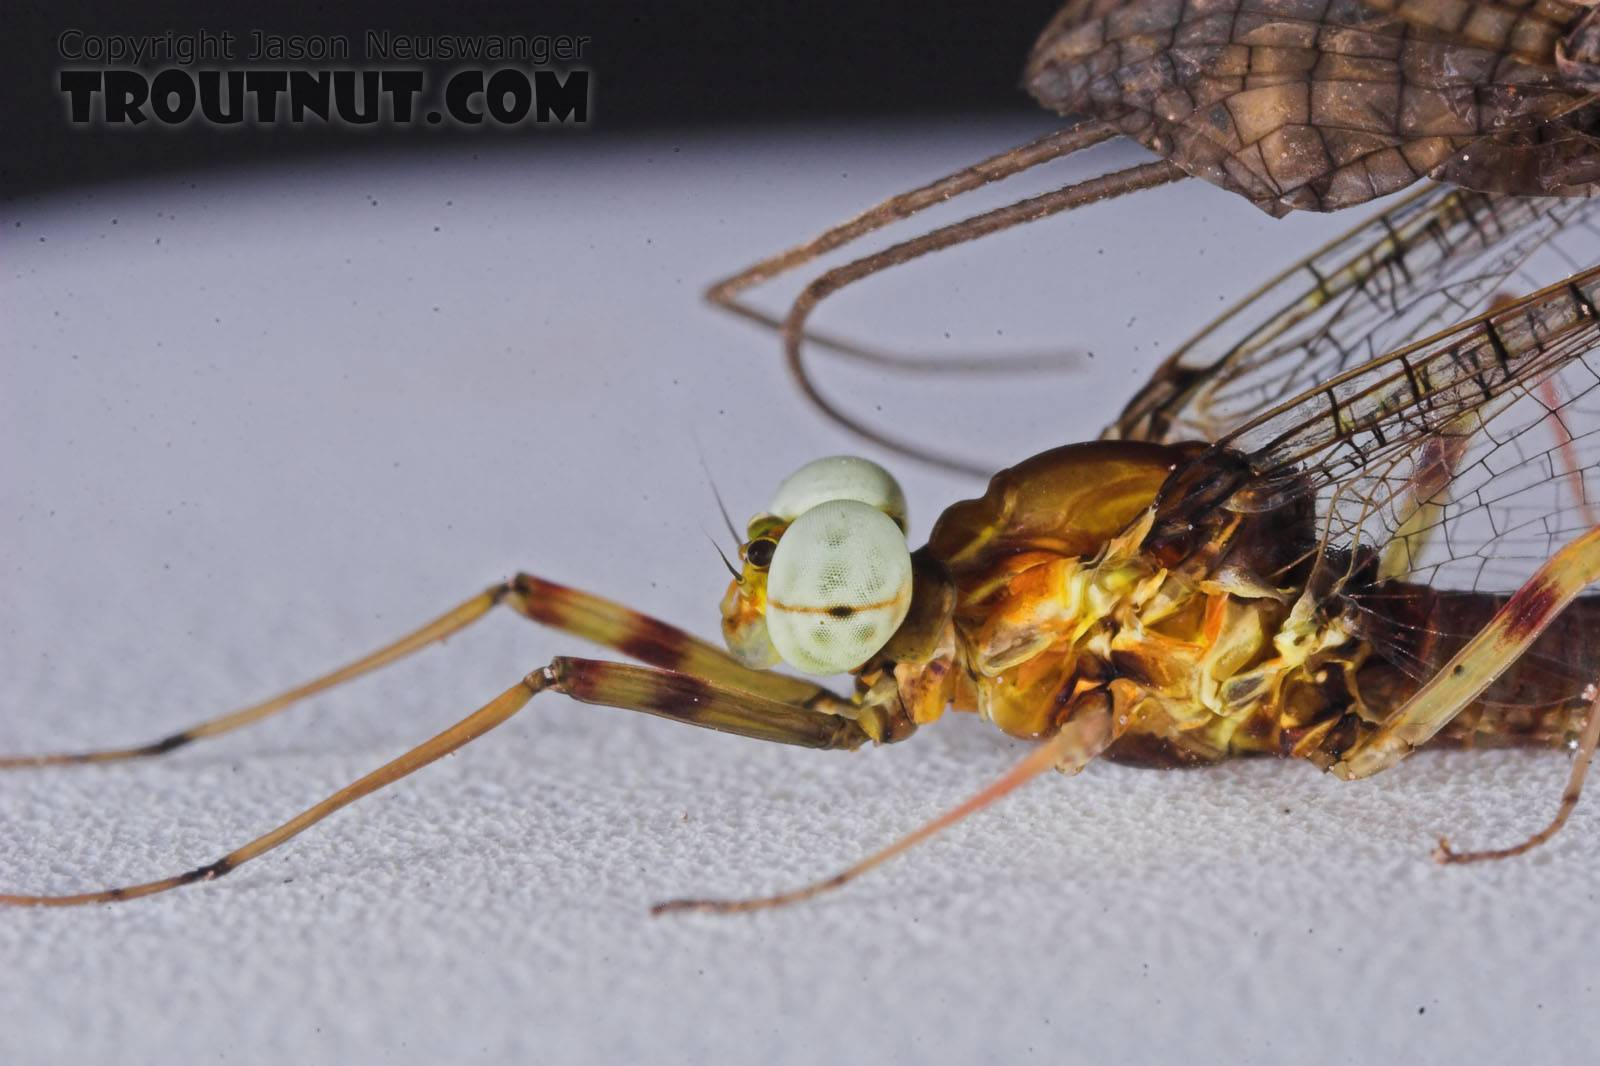 Male Maccaffertium vicarium (March Brown) Mayfly Spinner from the Namekagon River in Wisconsin